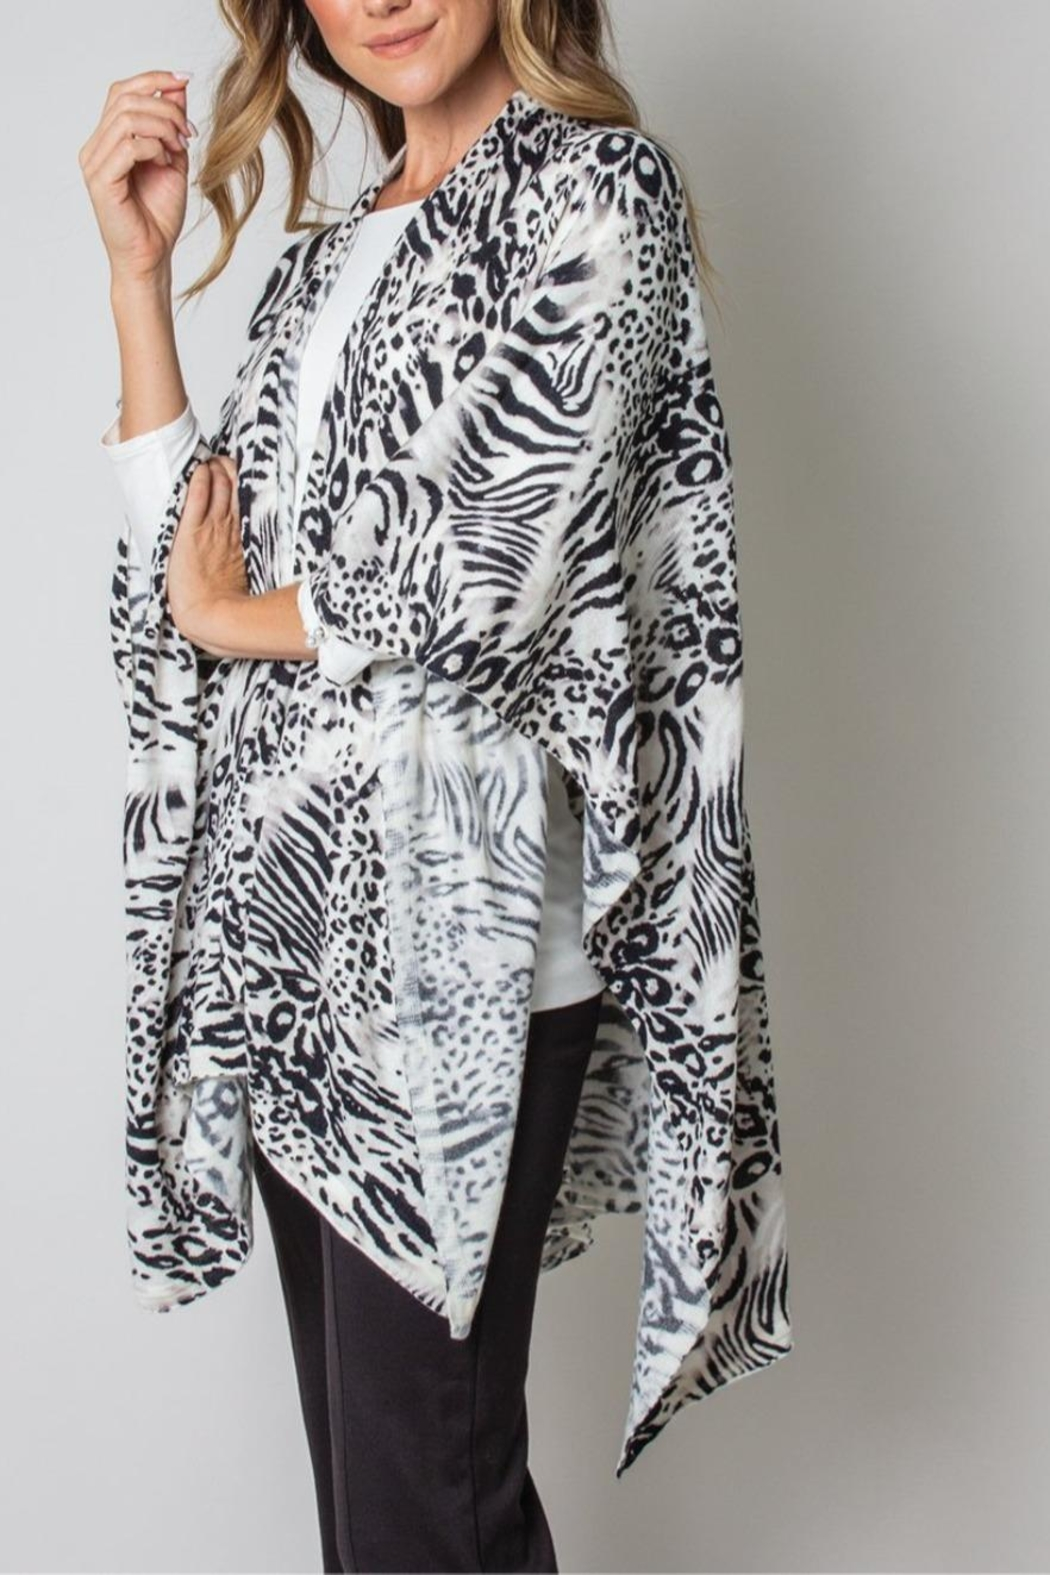 Simply Noelle Bordeaux Cardi Wrap Poncho Black And White Leopard - Back Cropped Image